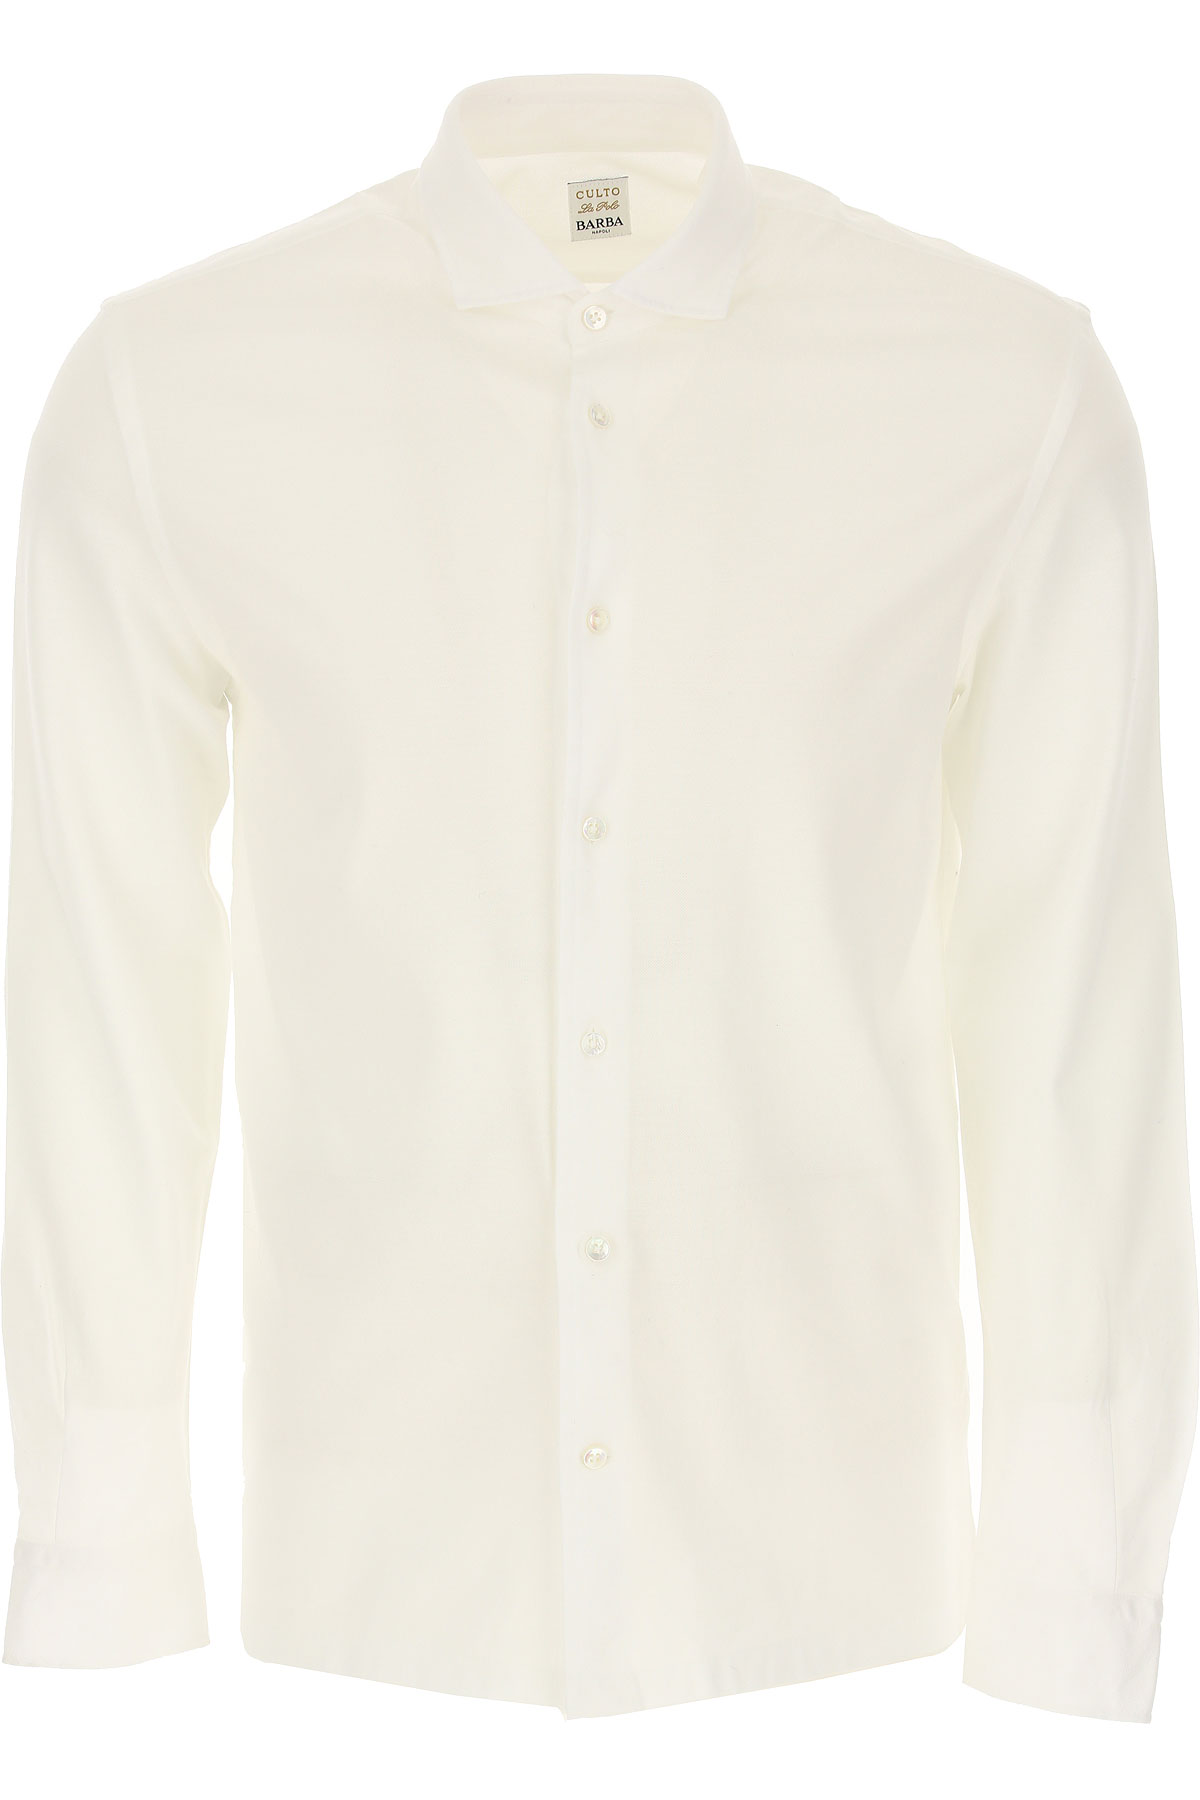 Barba Shirt for Men On Sale in Outlet, White, Cotton, 2019, 15.75 16.5